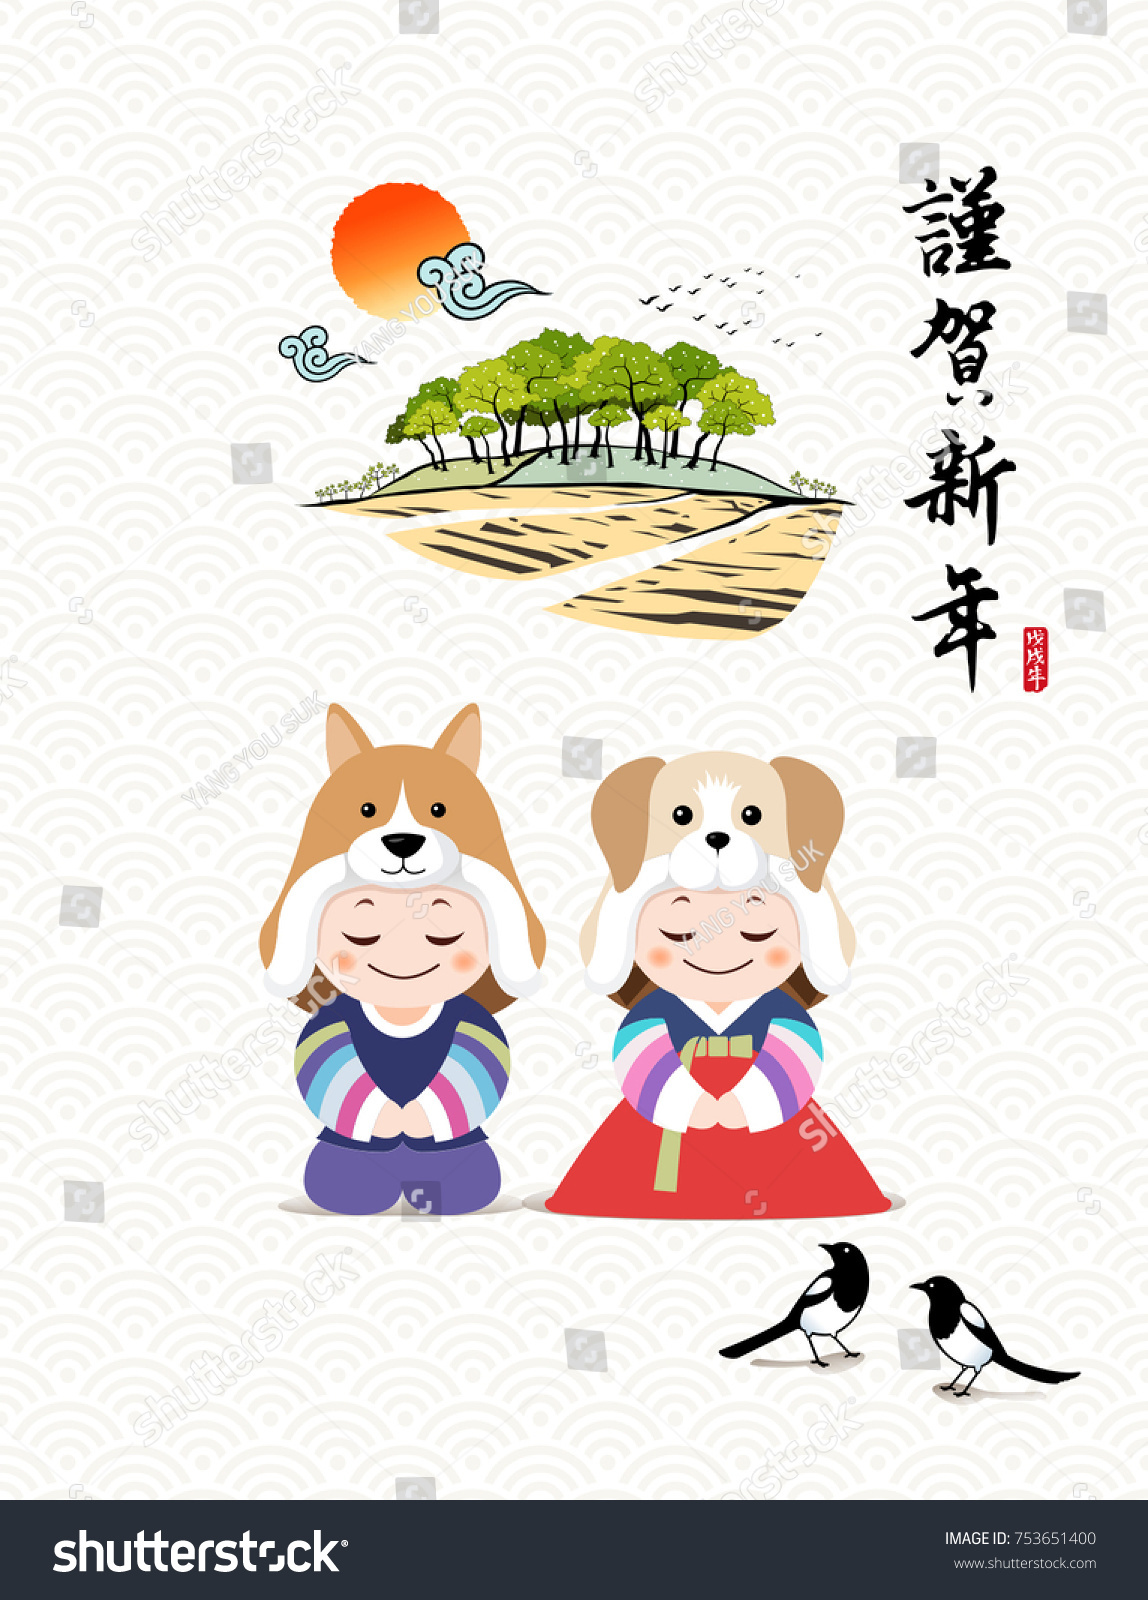 Happy new year translation chinese text stock vector royalty free happy new year translation of chinese text happy new year calligraphy and m4hsunfo